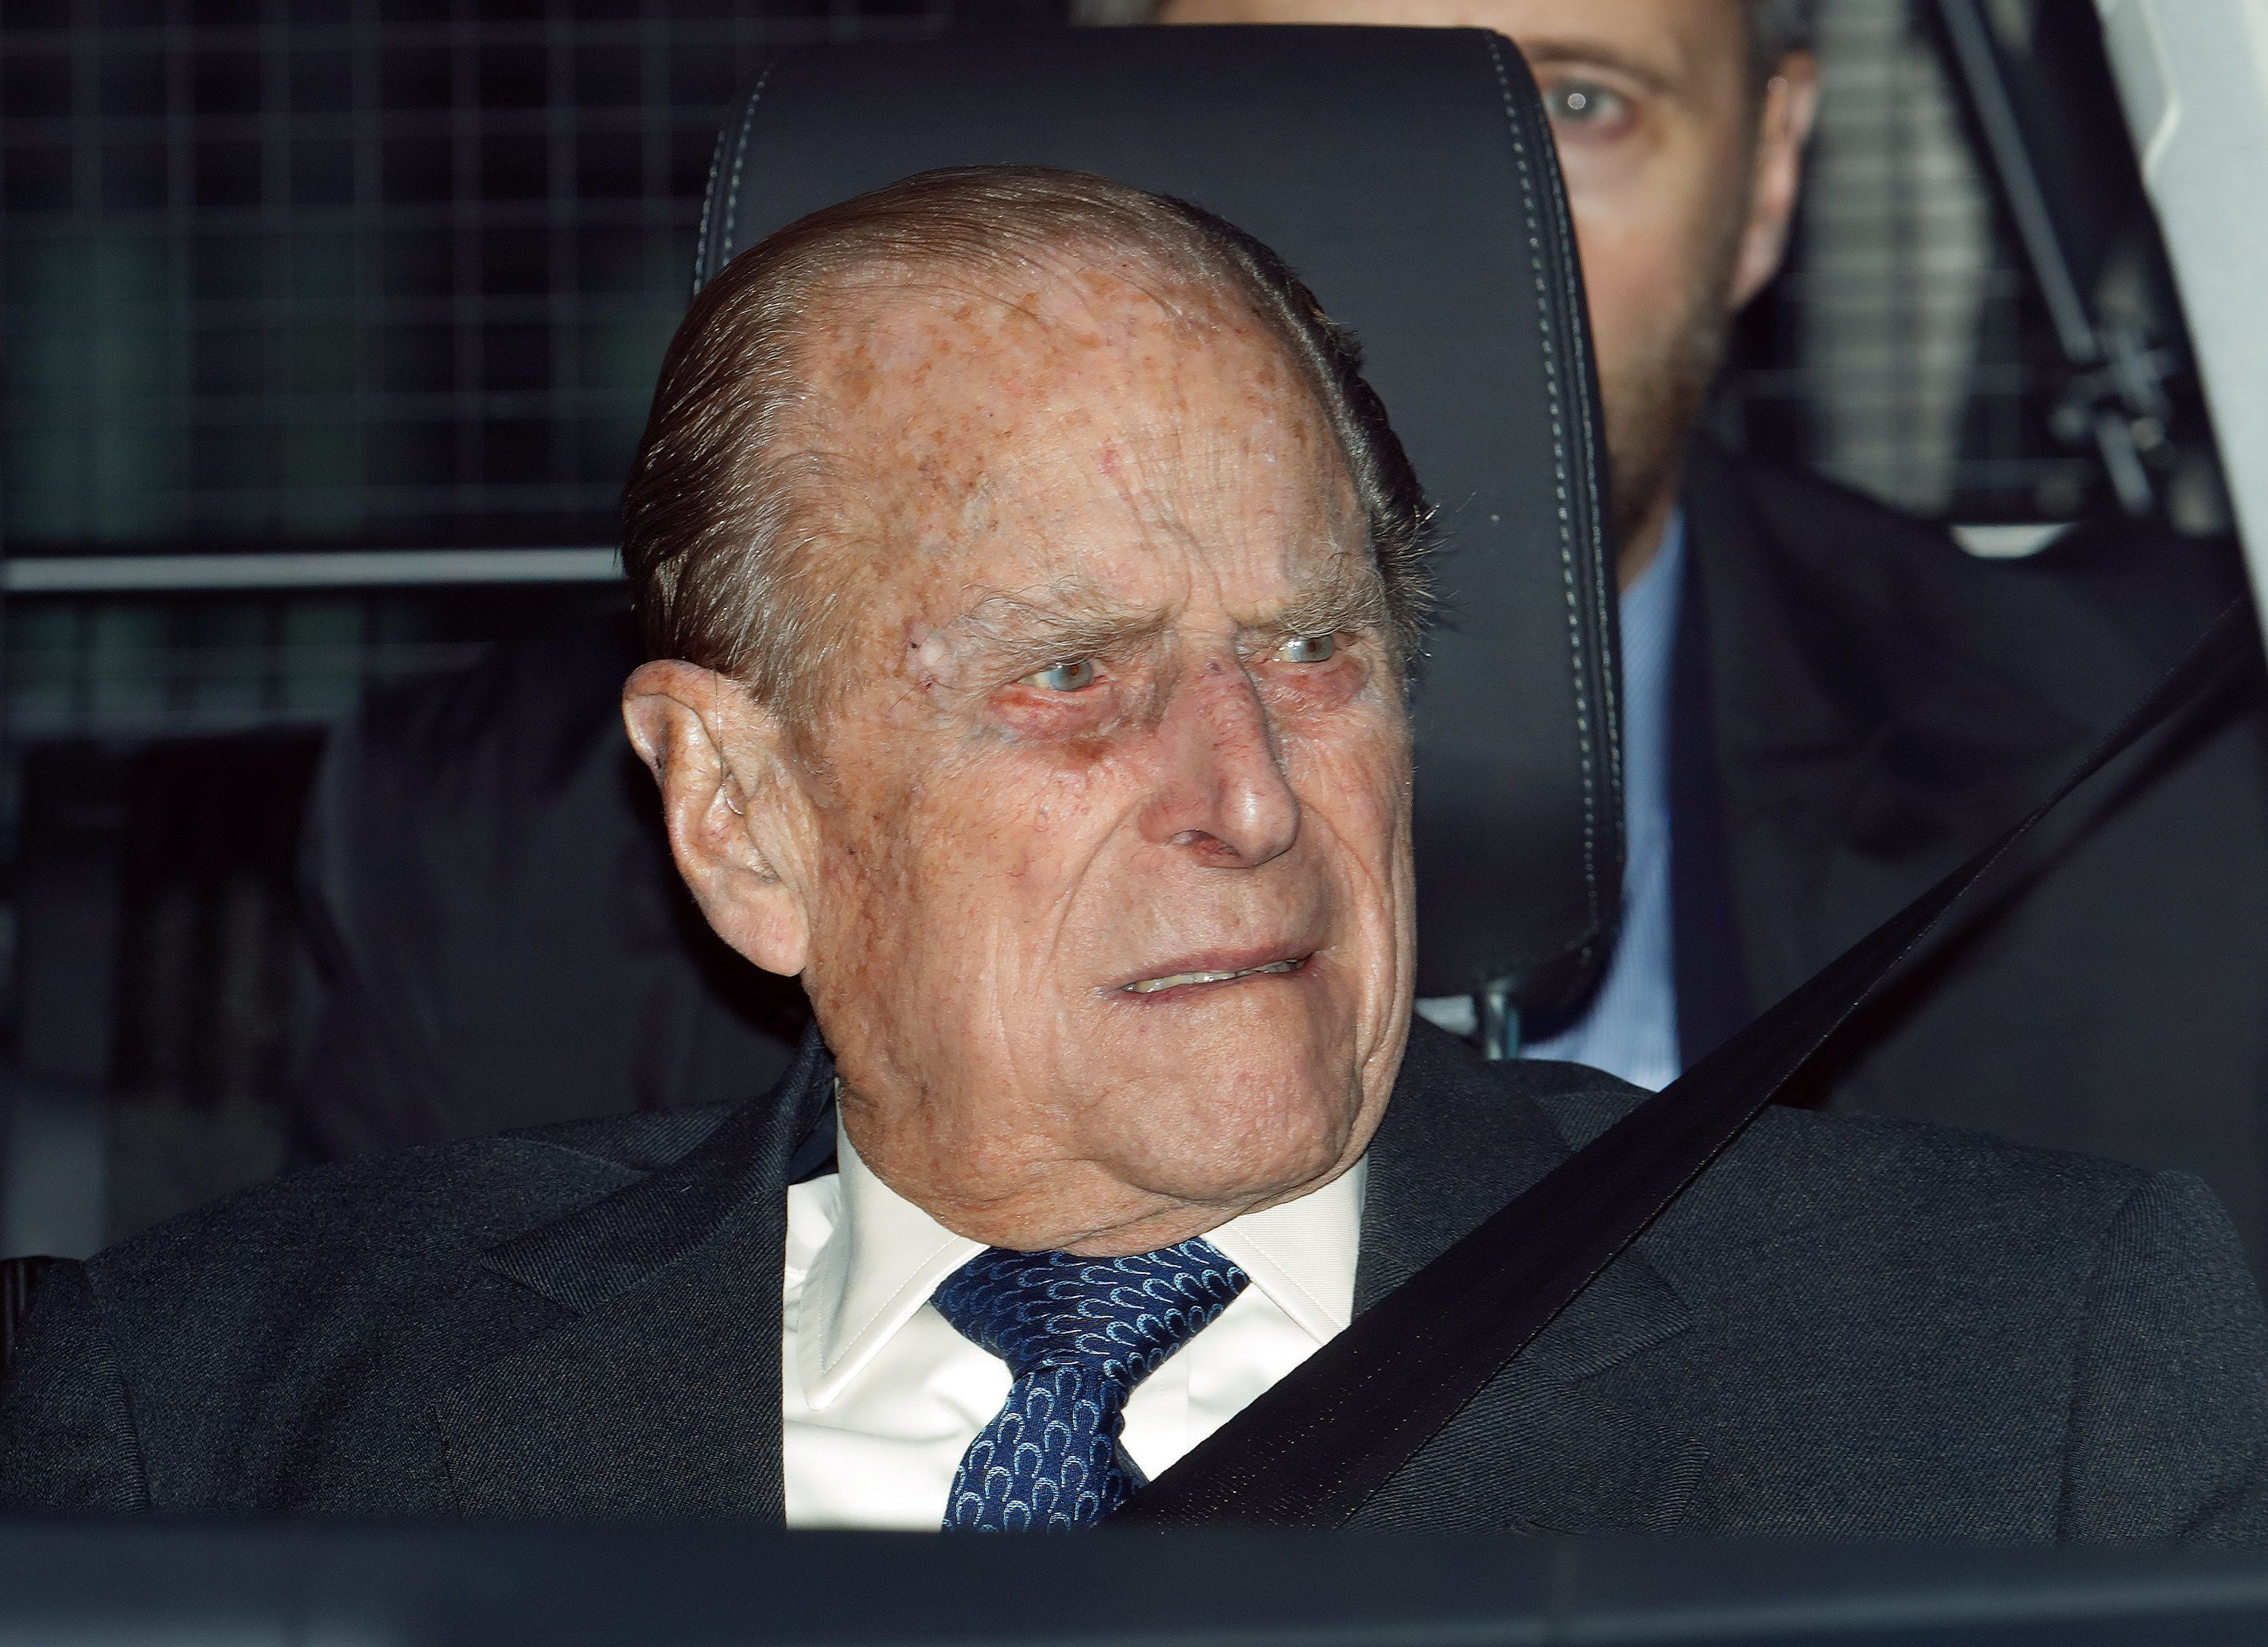 Britain's Prince Philip, 97, surrenders his driving licence weeks after crash